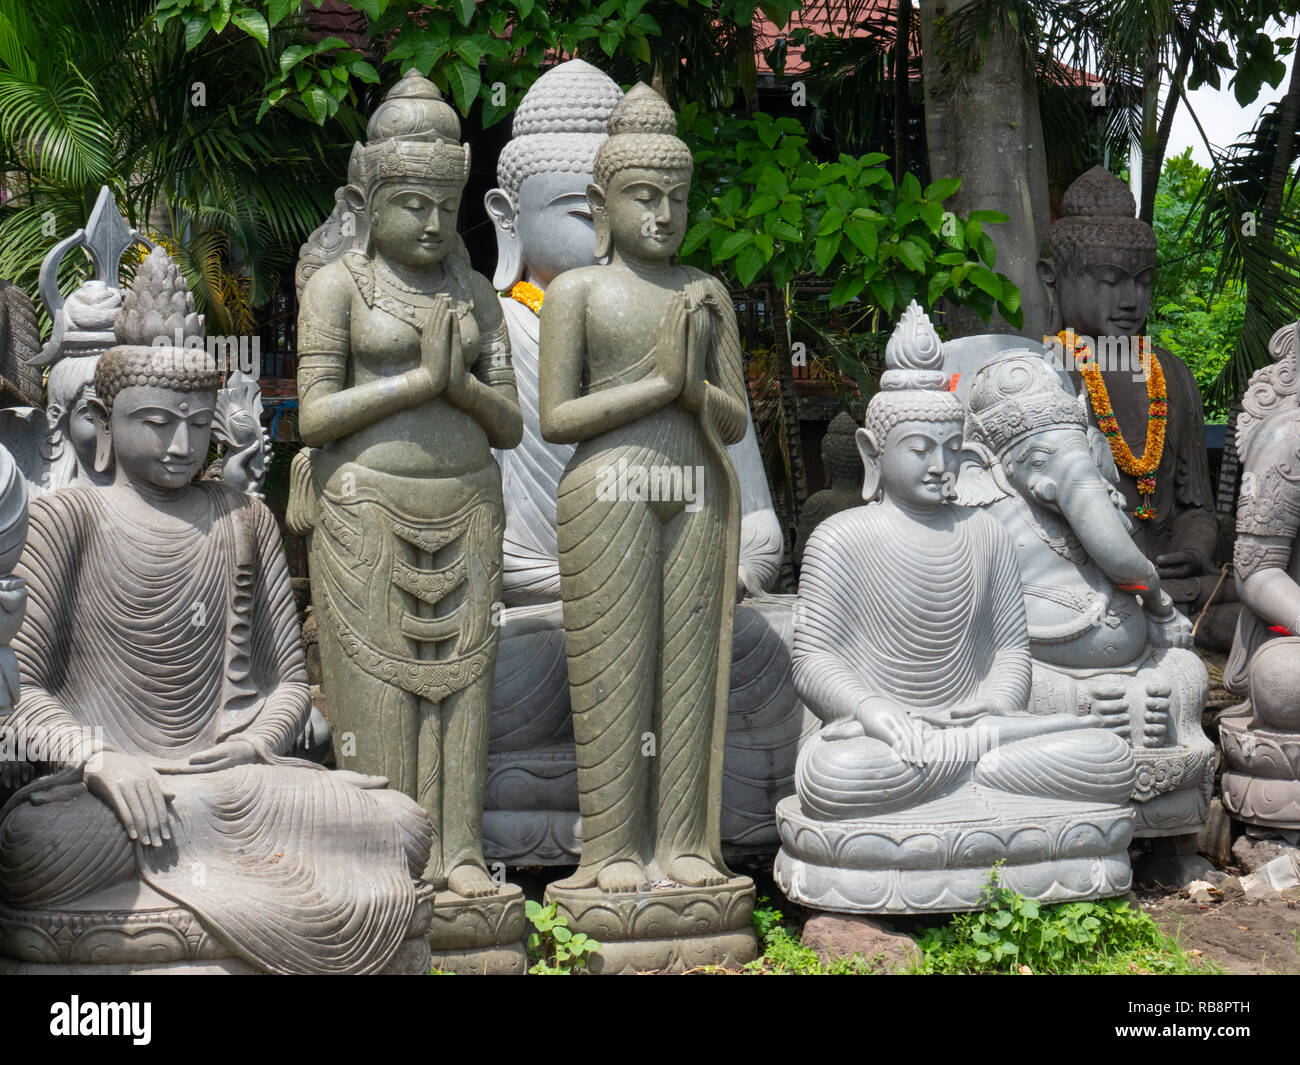 Garden Statues High Resolution Stock Photography And Images Alamy